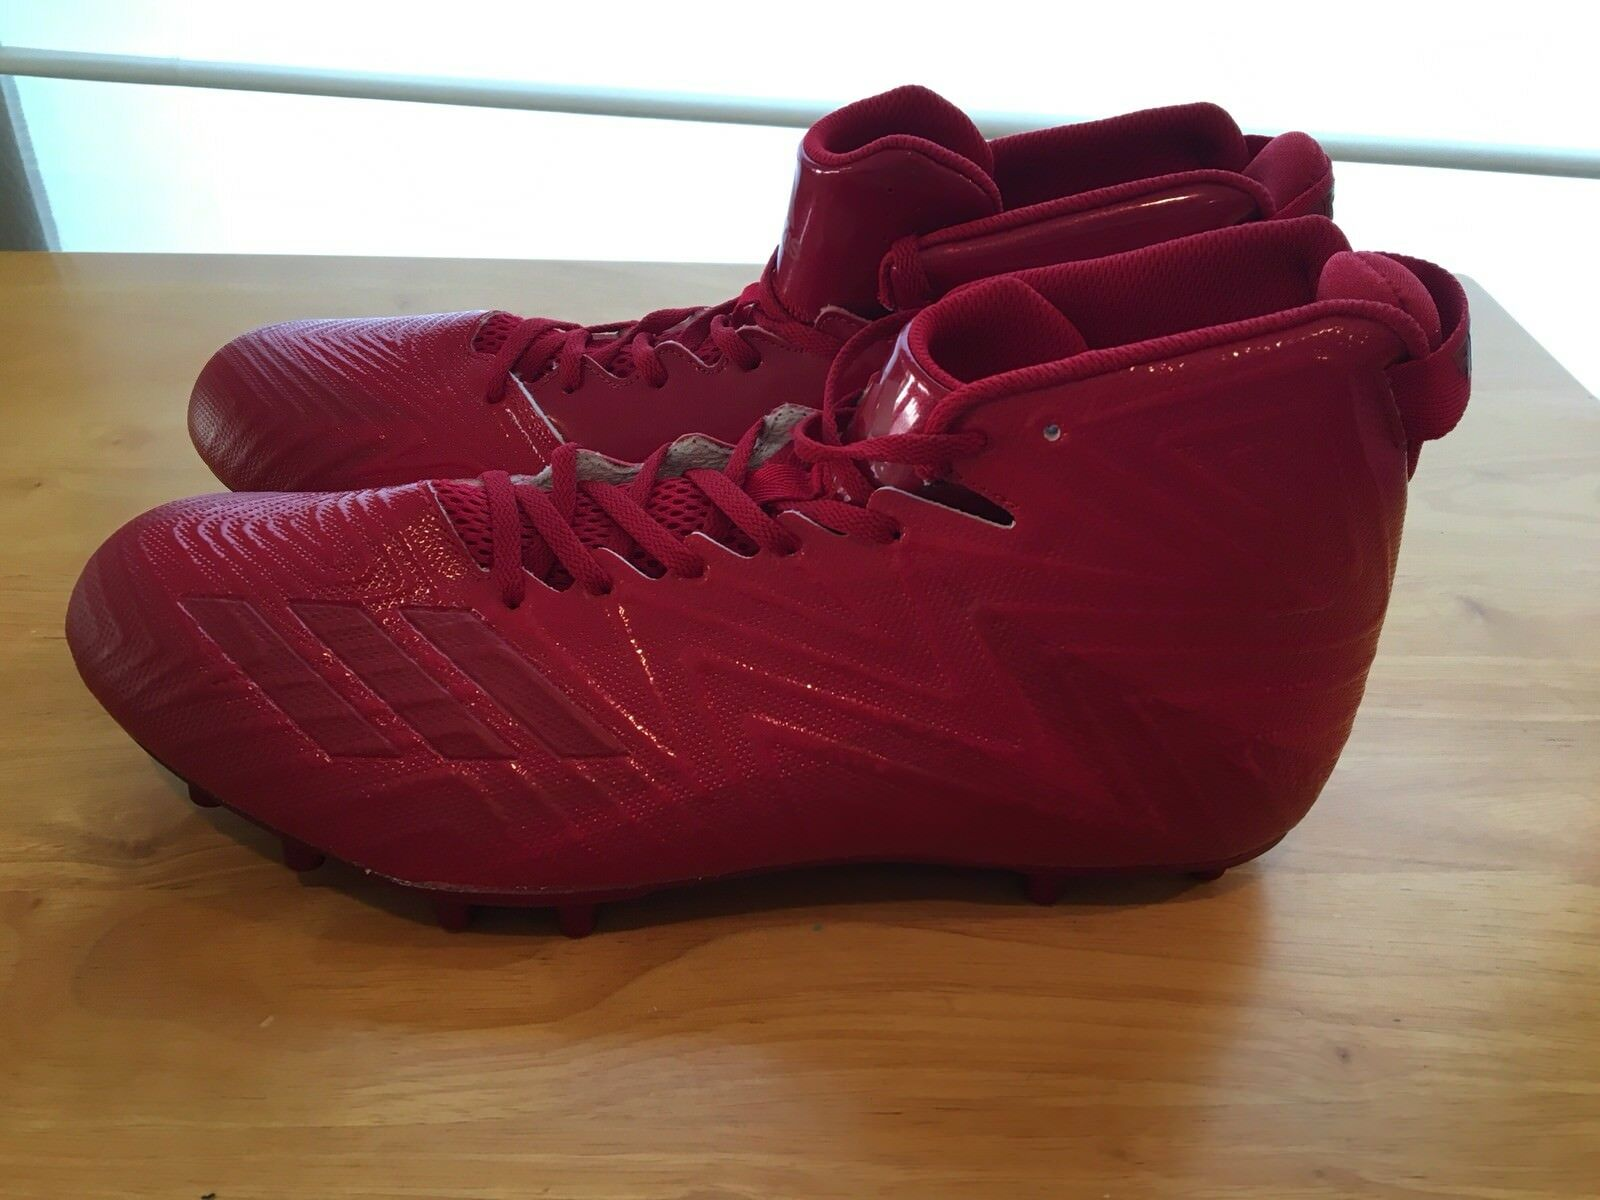 e95599317 New X Carbon Mid Football Cleats Size 14 Red Adidas Freak nnhzrp7470 ...